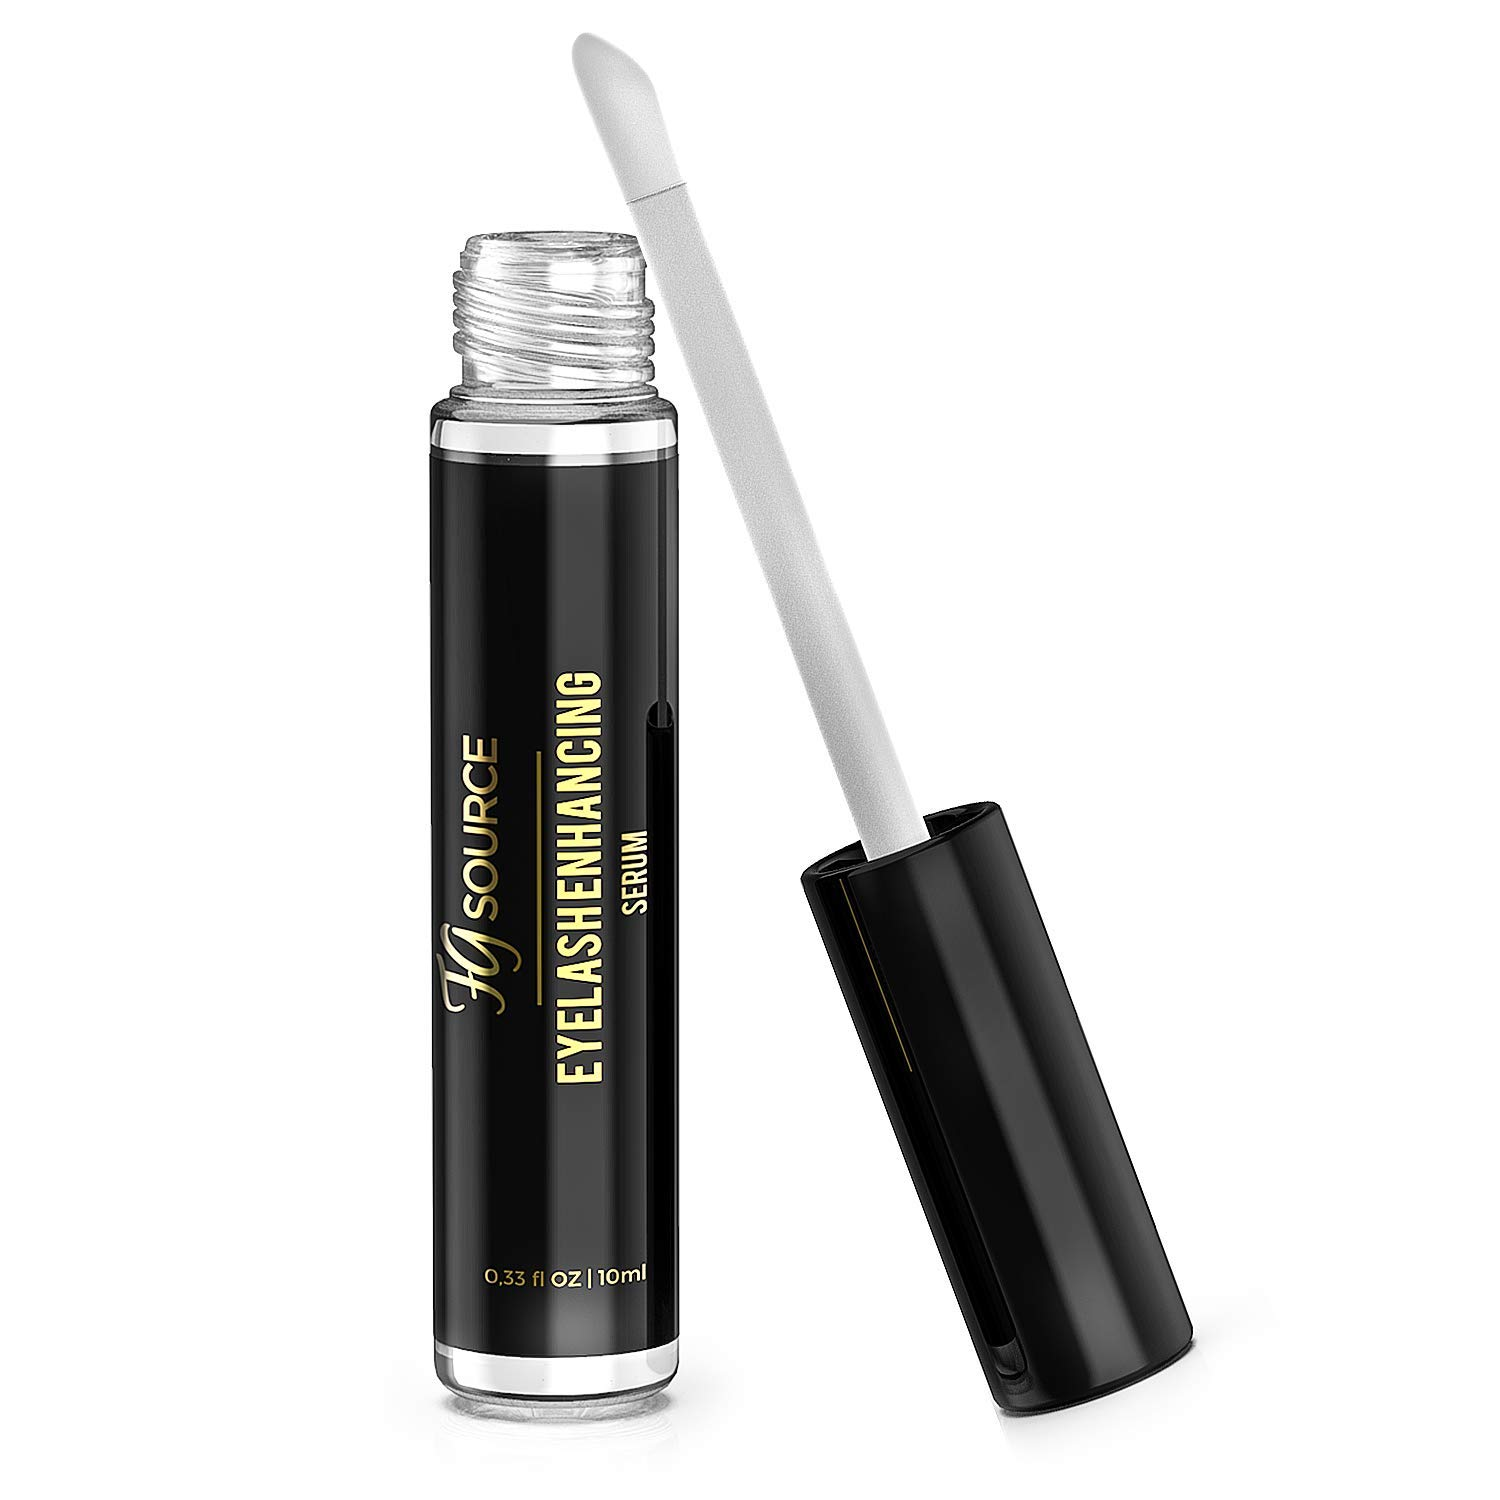 Eyelash Growth Serum Castor Oil - Natural Eyebrow & Eyelash Enhancer Designed to Lengthen & Thicken Thin, Skimpy Lashes & Brows - Lash Boost With Coconut Oil & Vitamin E, Made in USA, 10ml